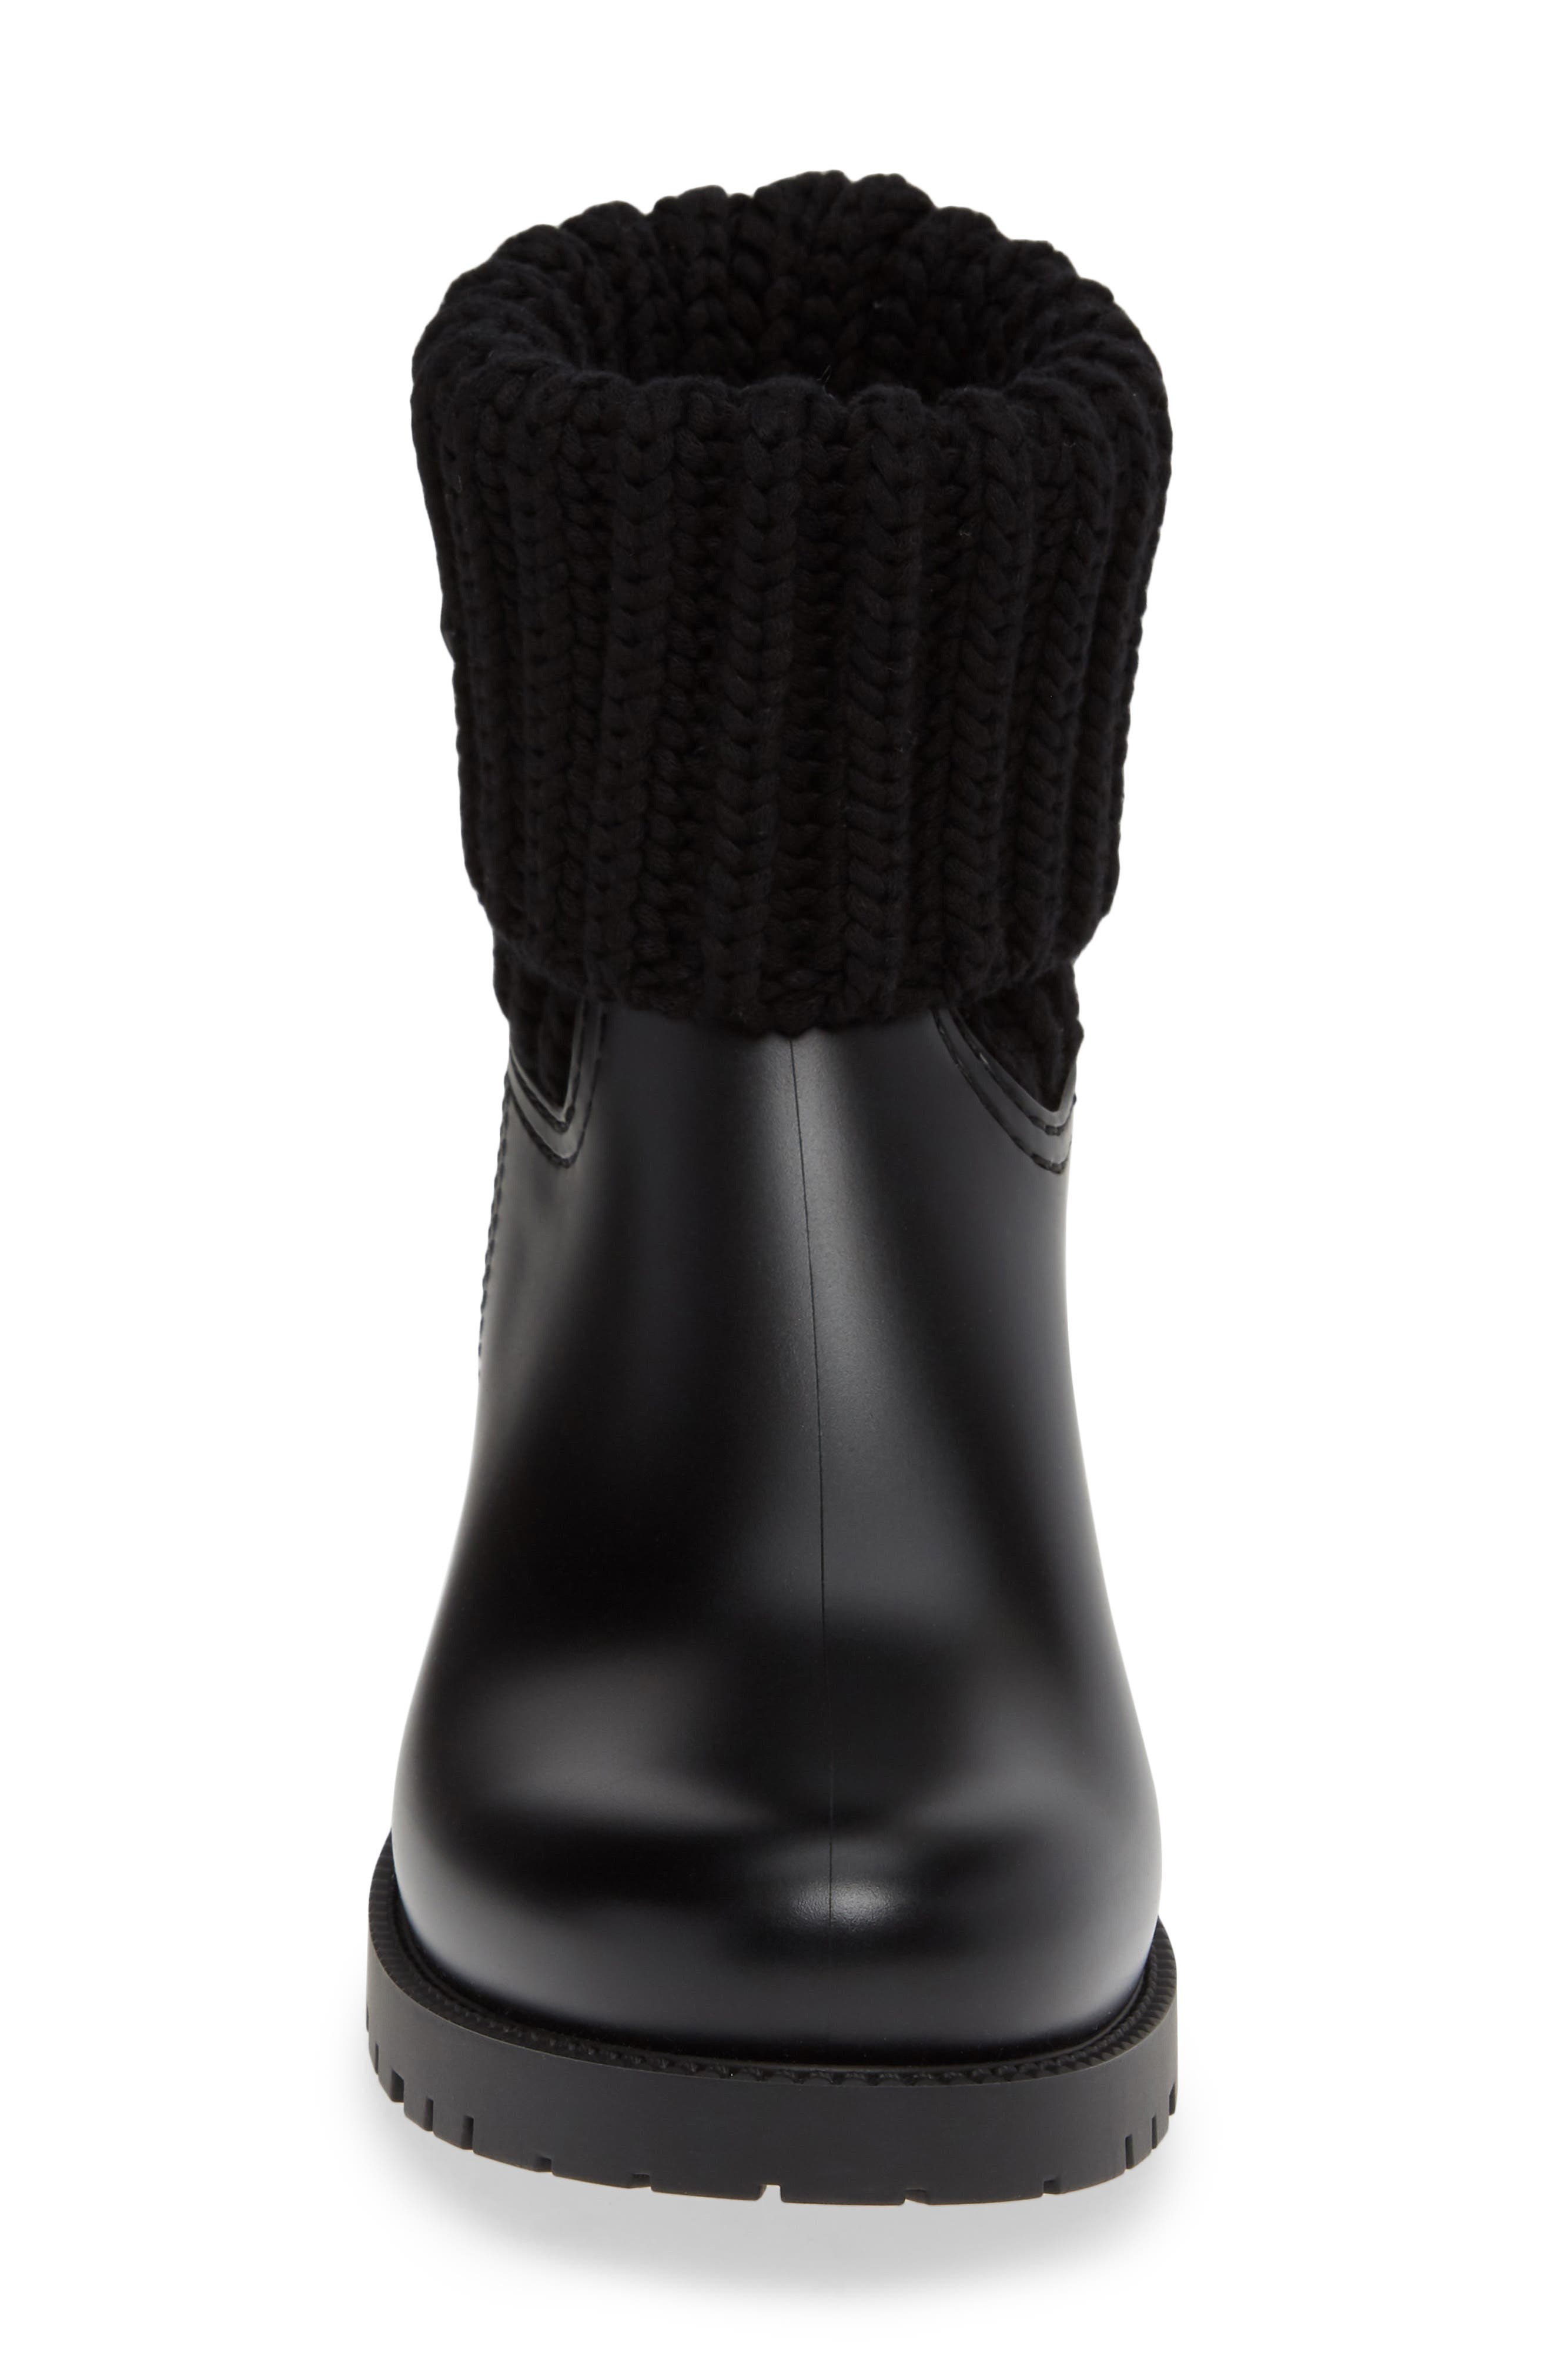 MONCLER, Ginette Stivale Knit Cuff Water Resistant Rain Boot, Alternate thumbnail 4, color, BLACK